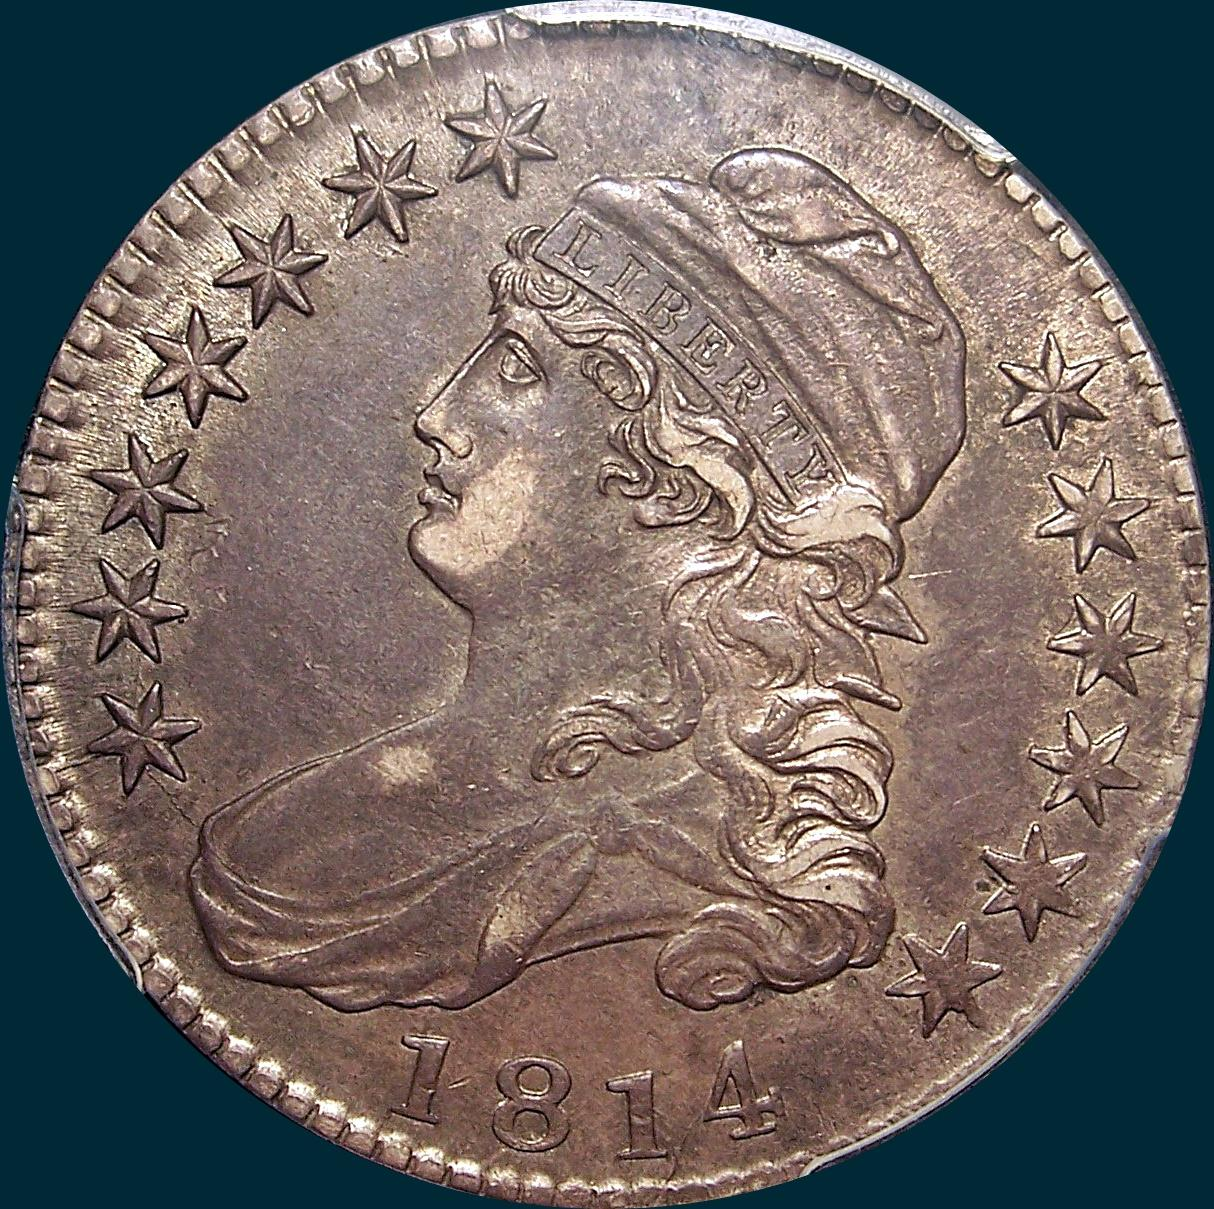 1814, E over A, O-108, capped bust half dollar